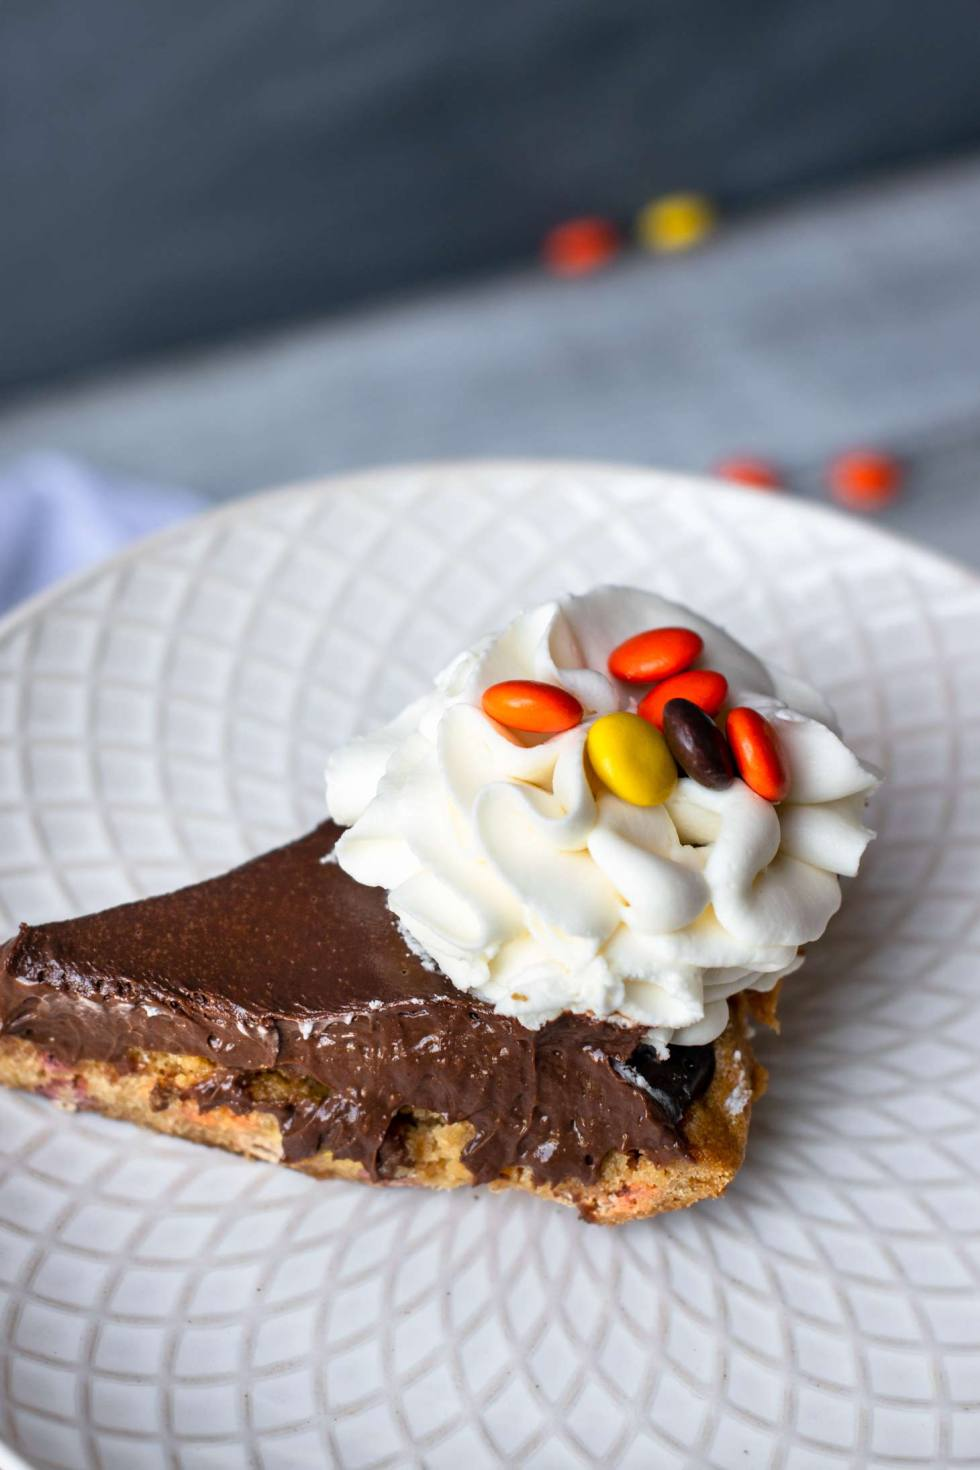 Peanut butter and chocolate pie on a white plate with Reese's pieces.